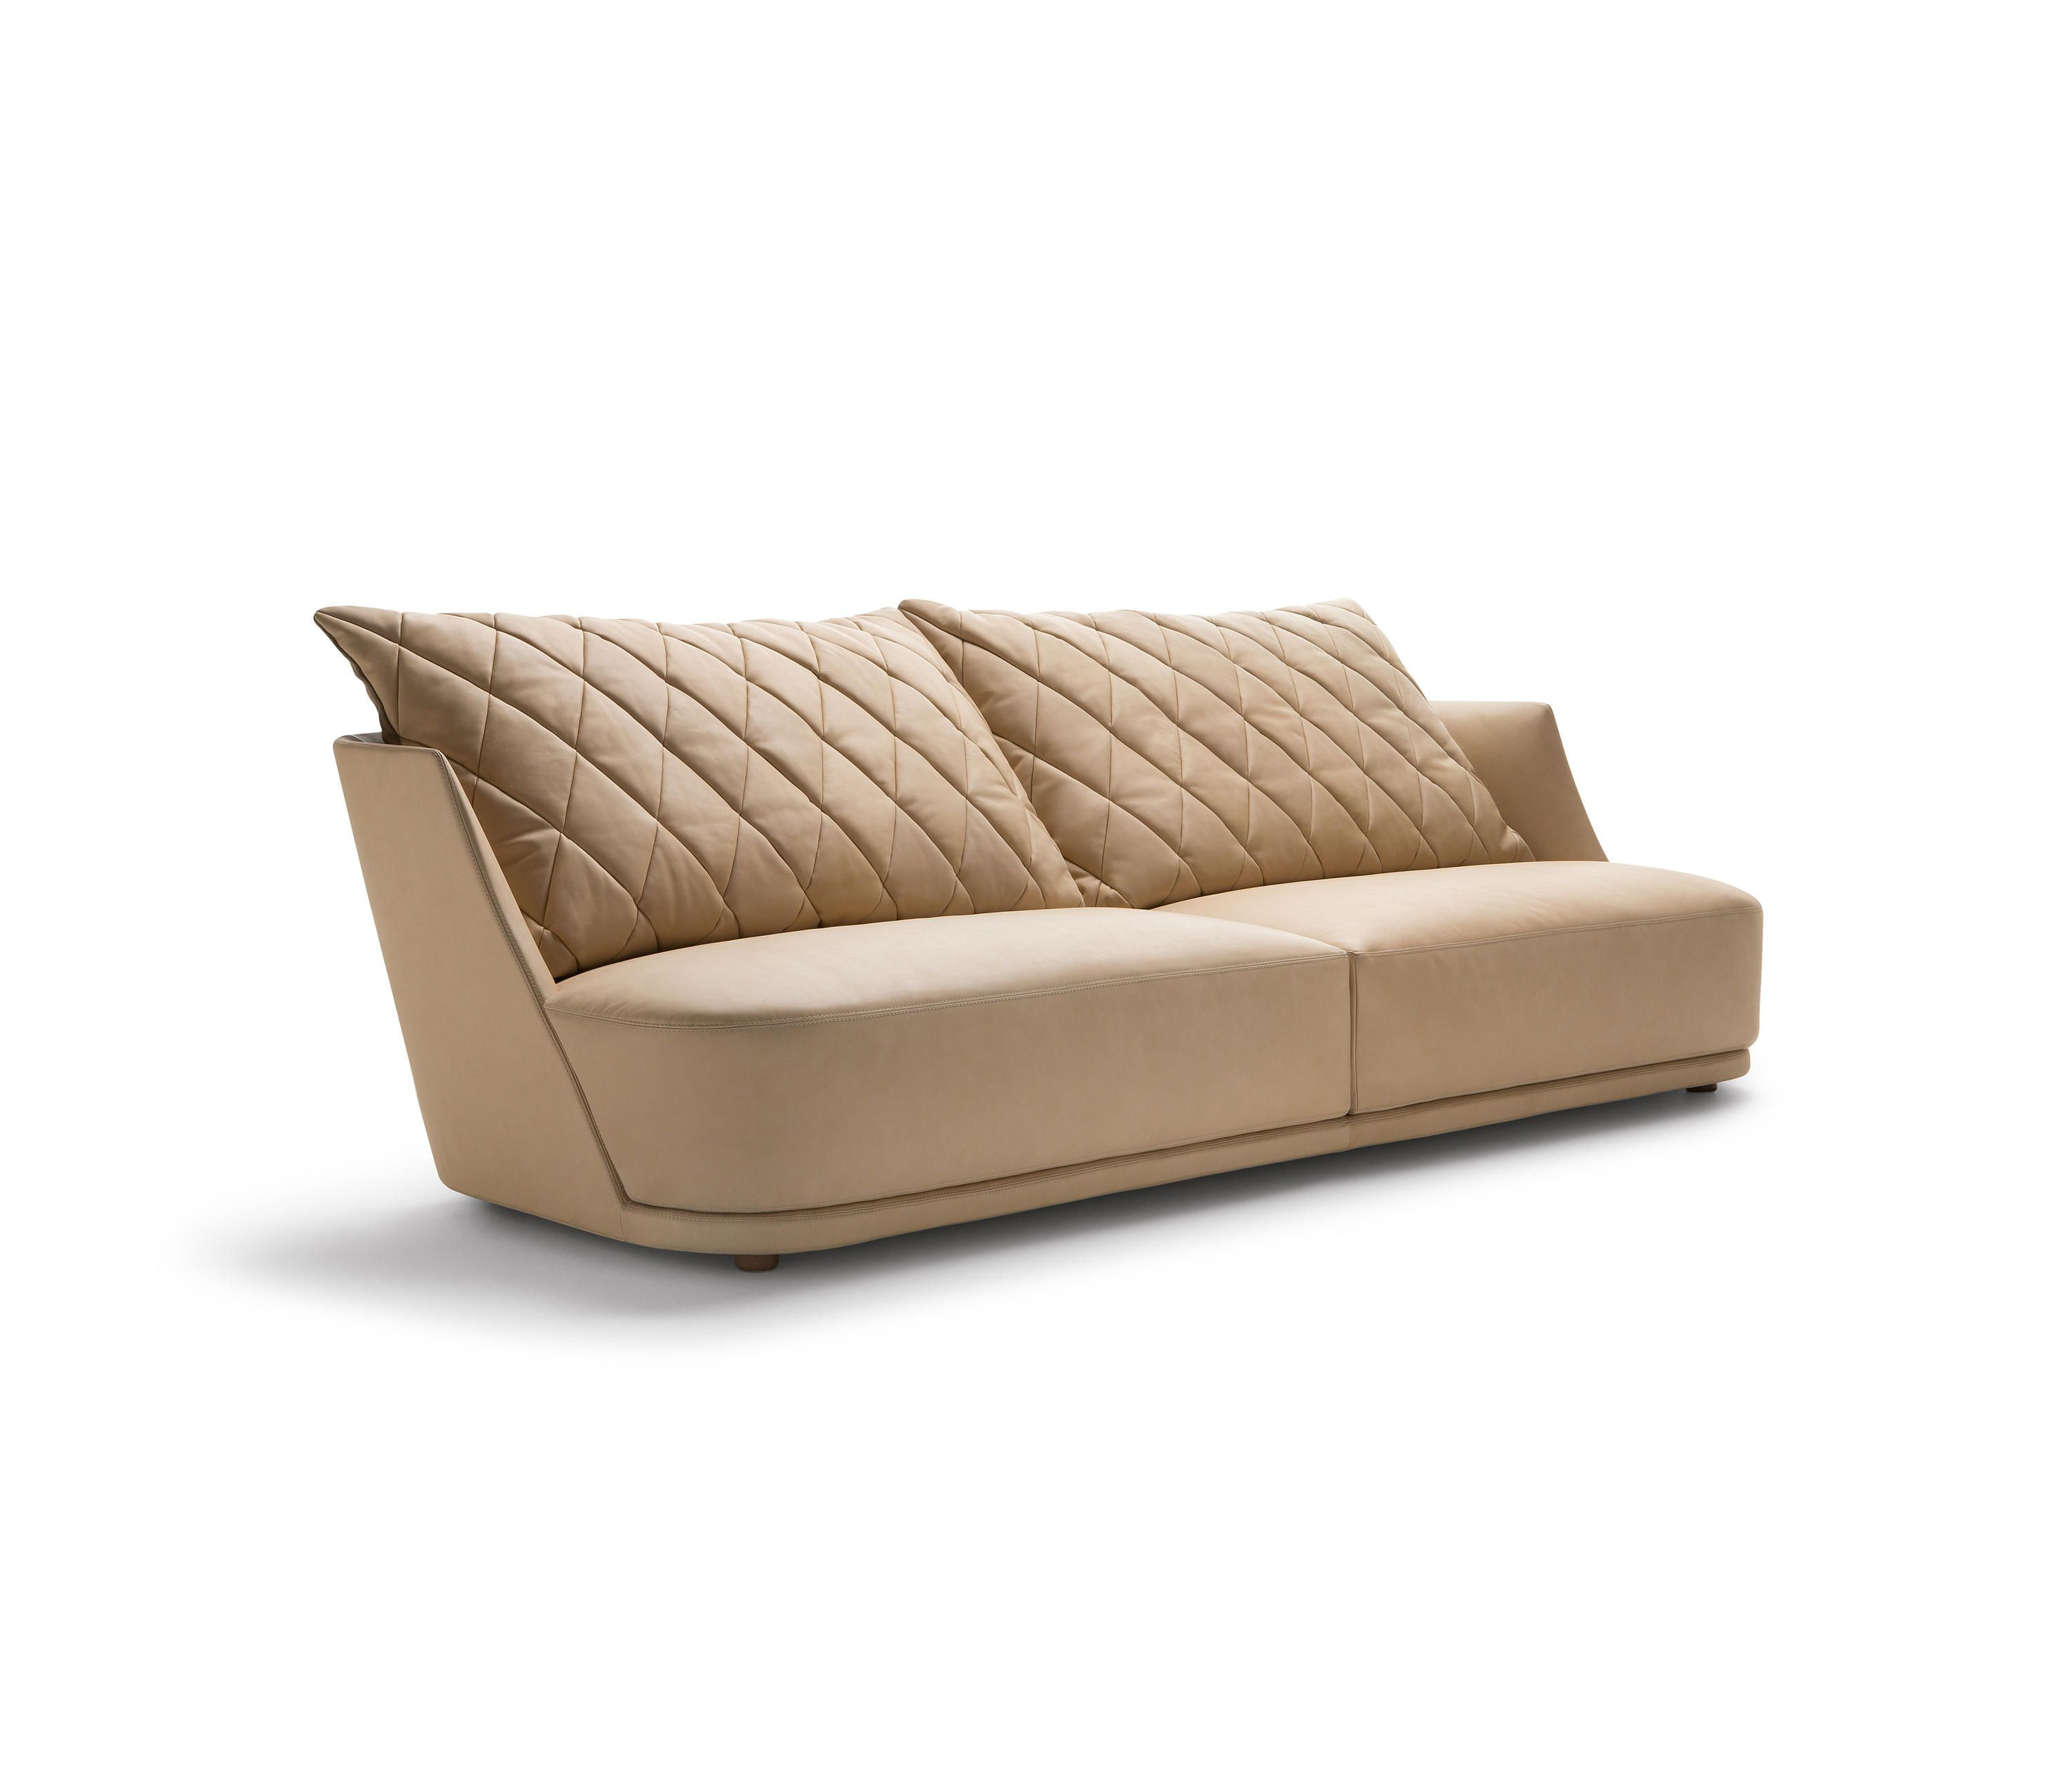 Grace – Sofasalberta Pacific Furniture | Architonic | Dw单位沙发 With Grace Sofa Chairs (Image 5 of 20)